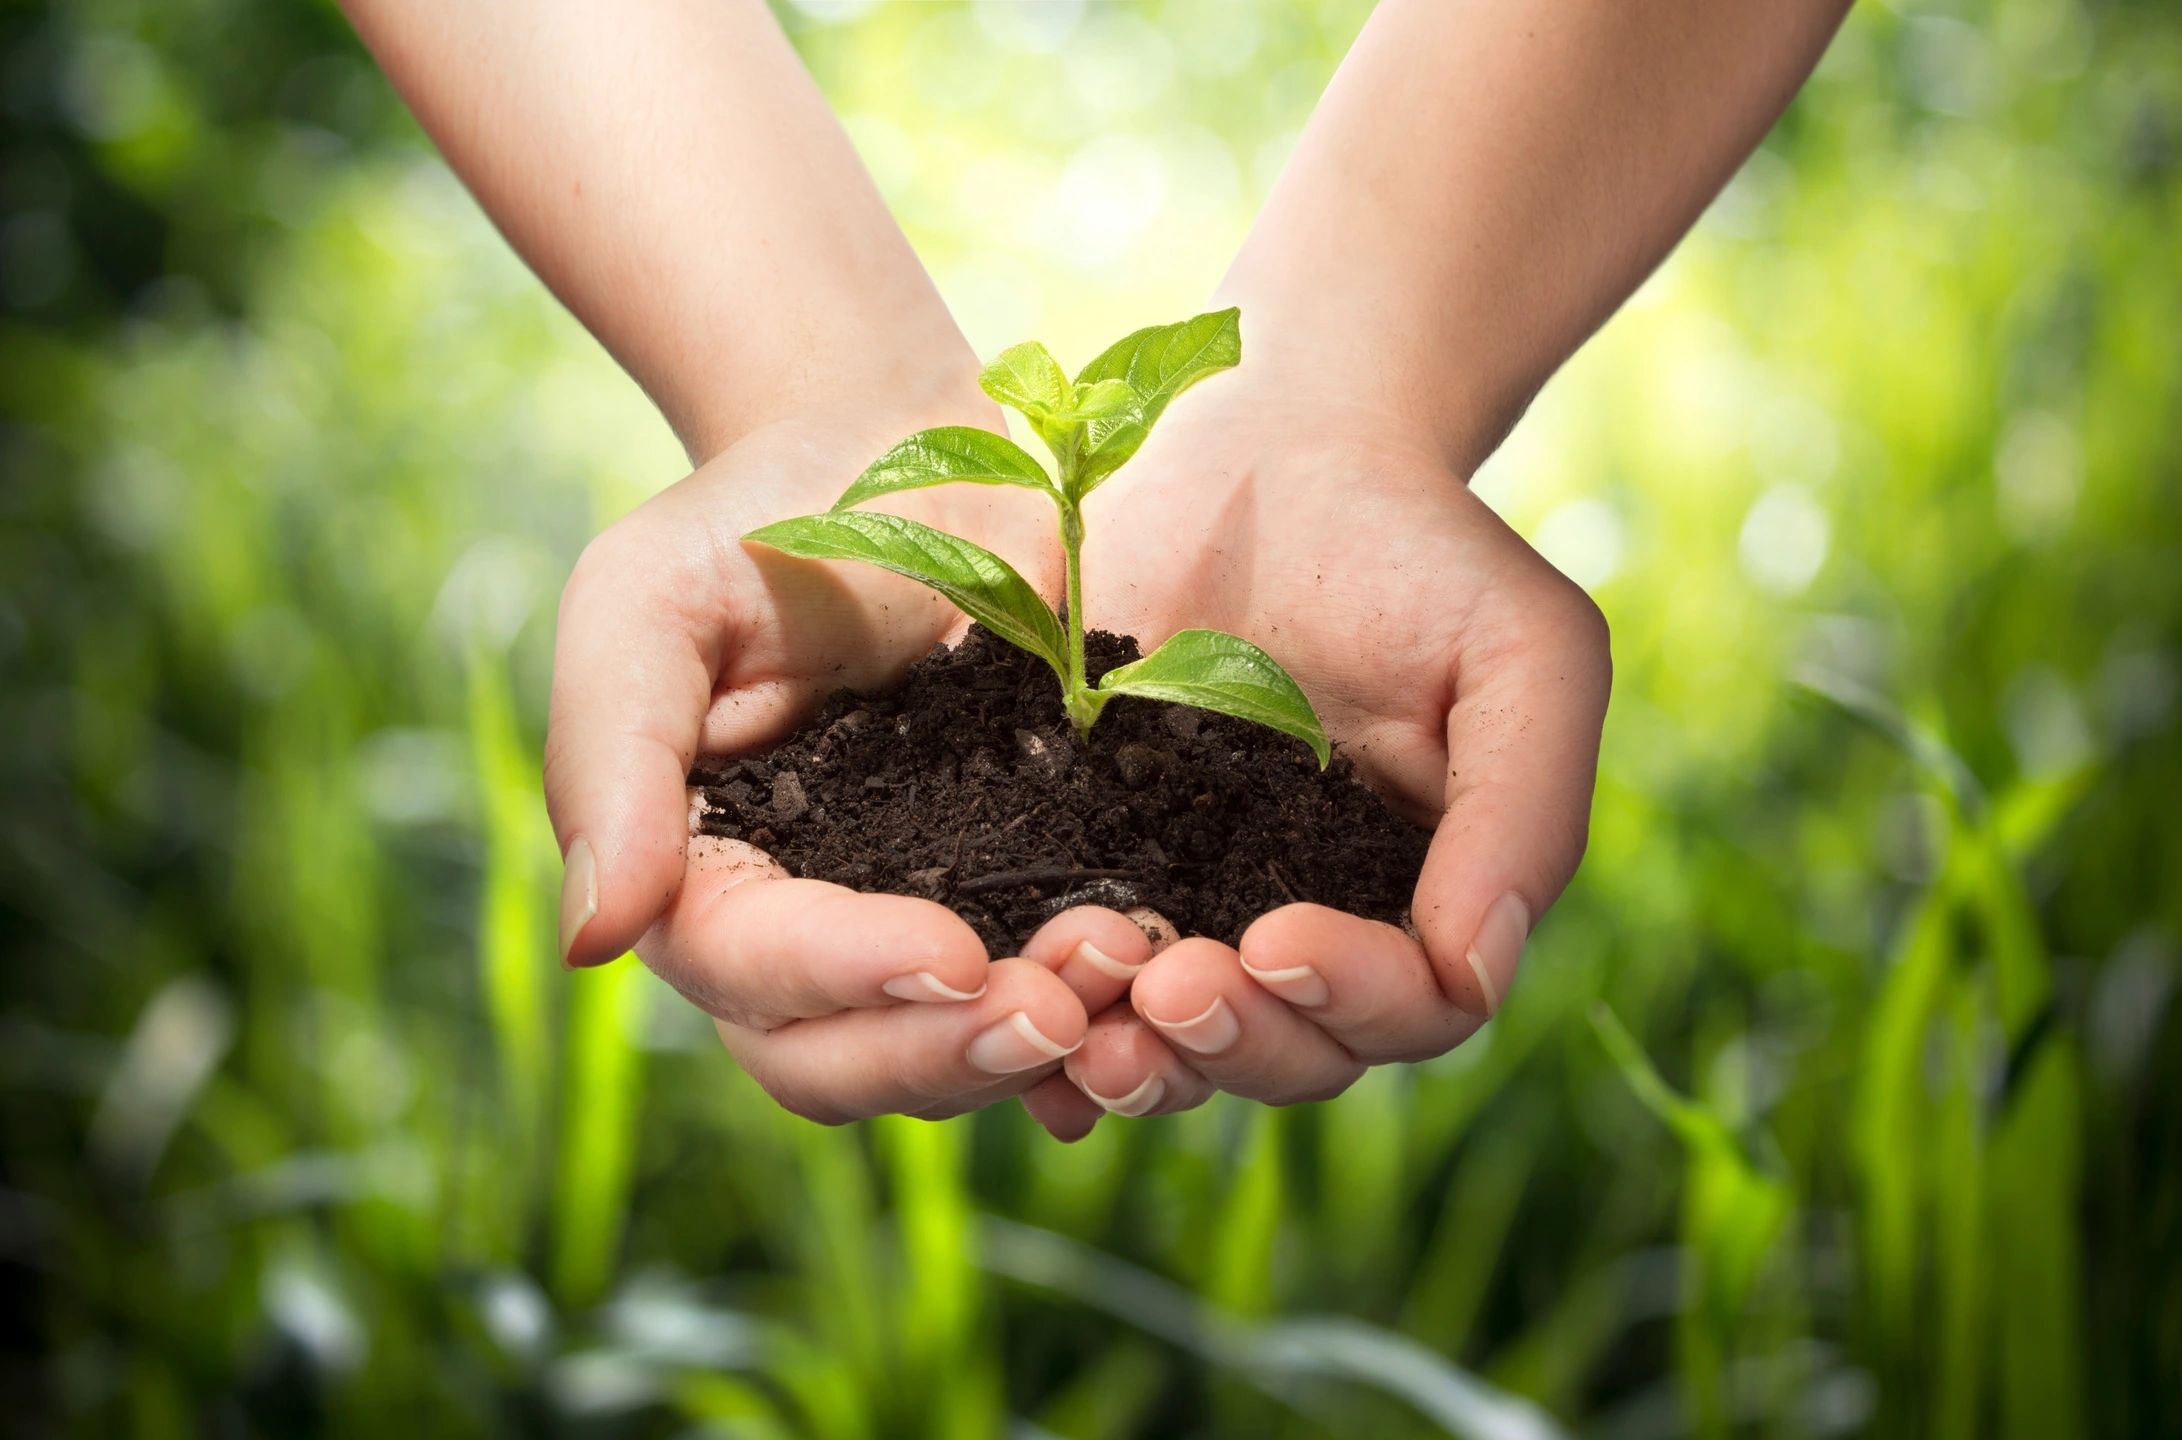 Image of hands holding dirt, signifying our stewardship of the planet.